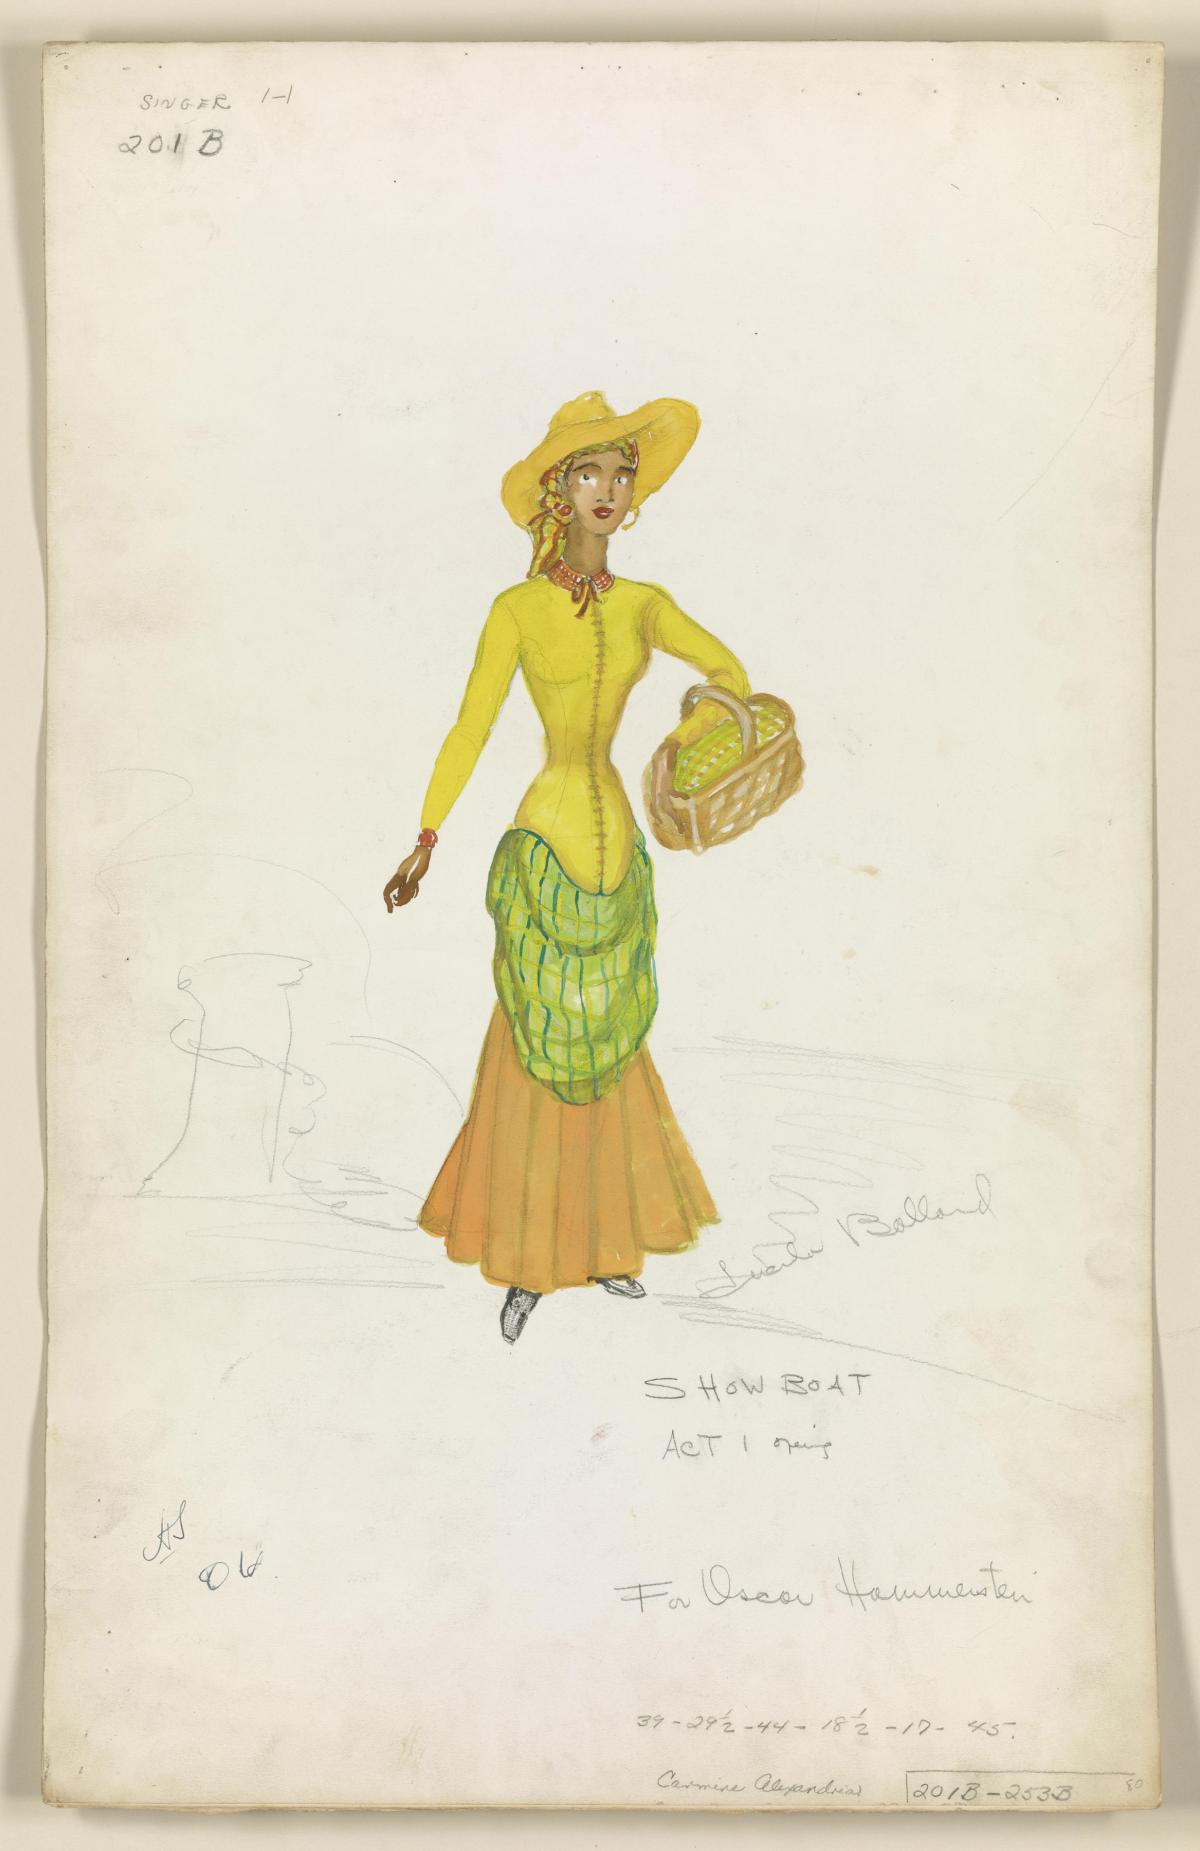 Lucinda Ballard's costume design for the 1946 revival of Show Boat.